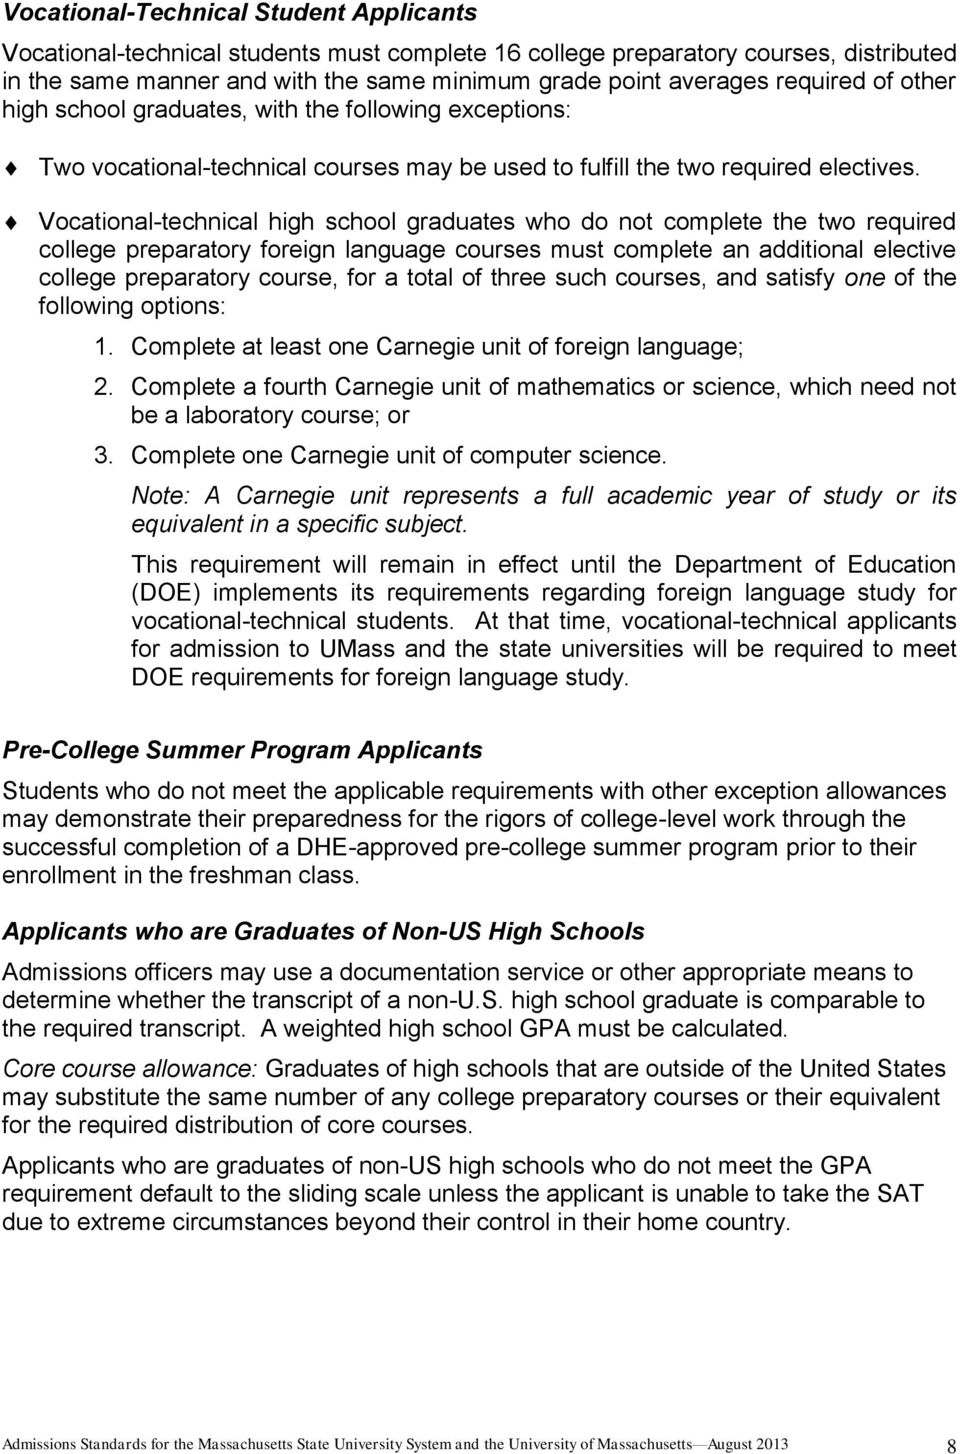 Vocational-technical high school graduates who do not complete the two required college preparatory foreign language courses must complete an additional elective college preparatory course, for a